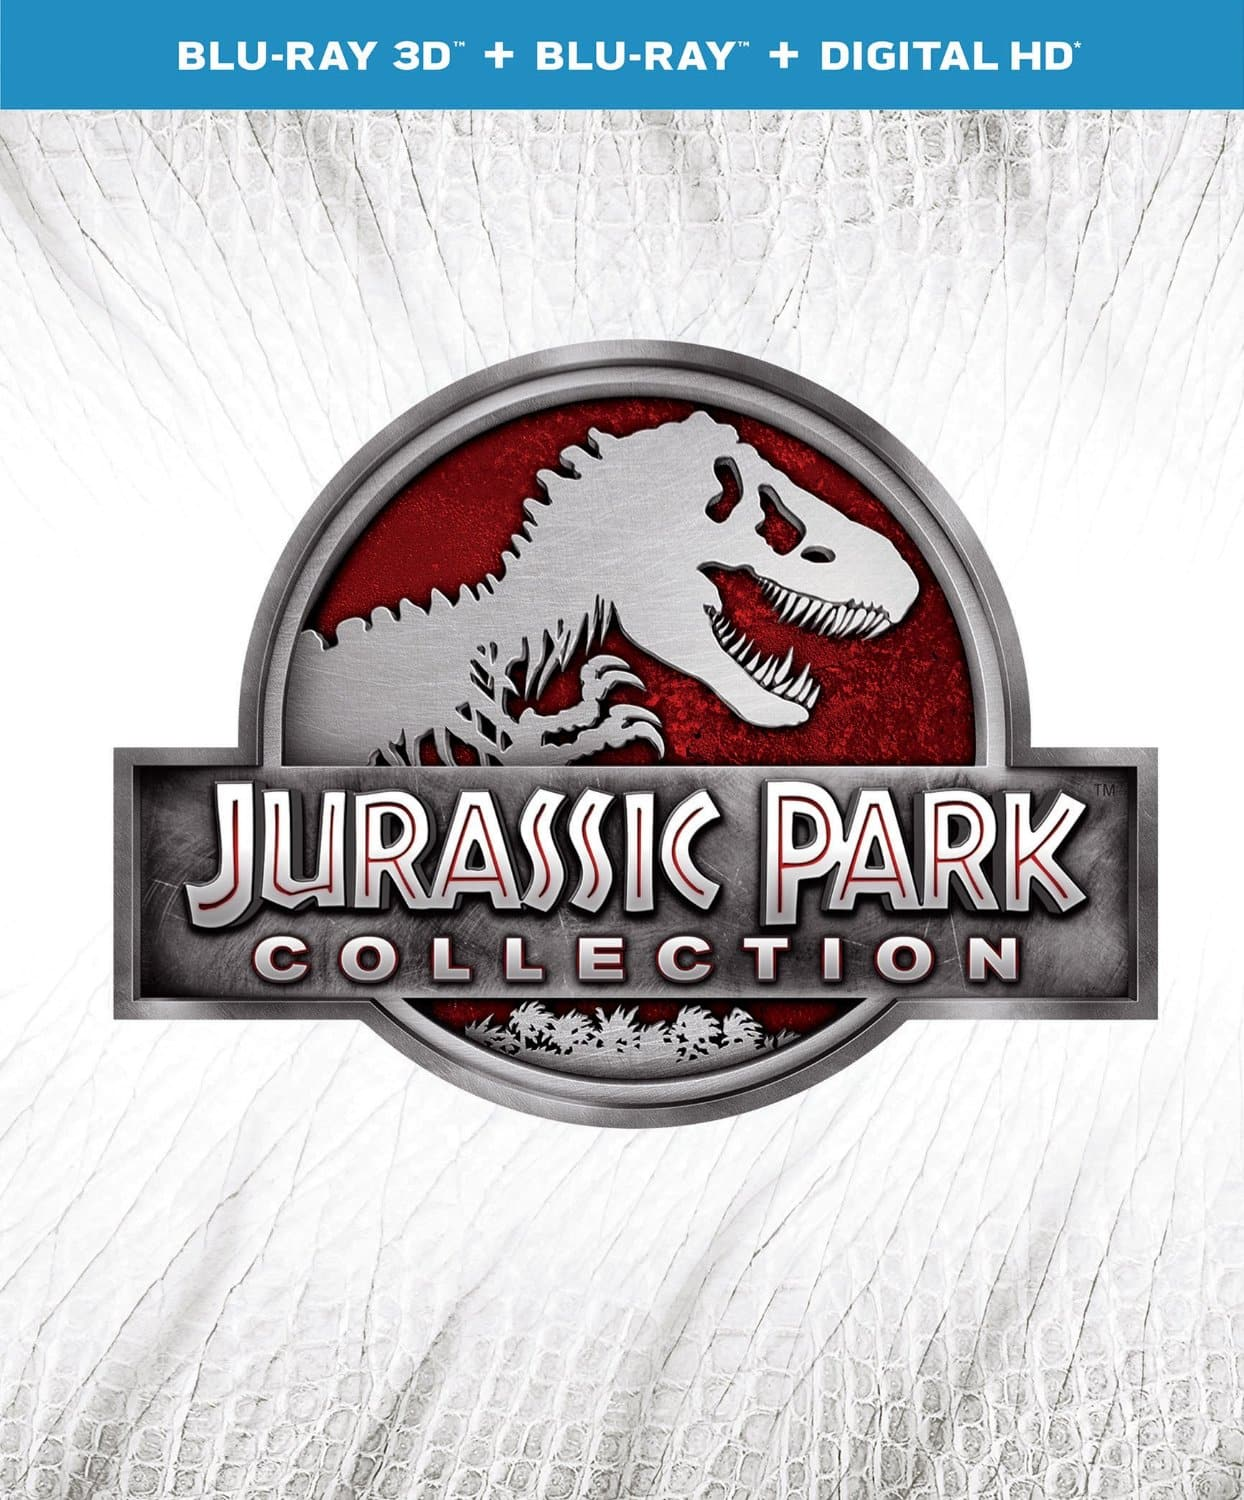 Jurassic Park Collection (Blu-ray): Jurassic Park, The Lost World Jurassic Park, Jurassic Park III and Jurassic World $24.99